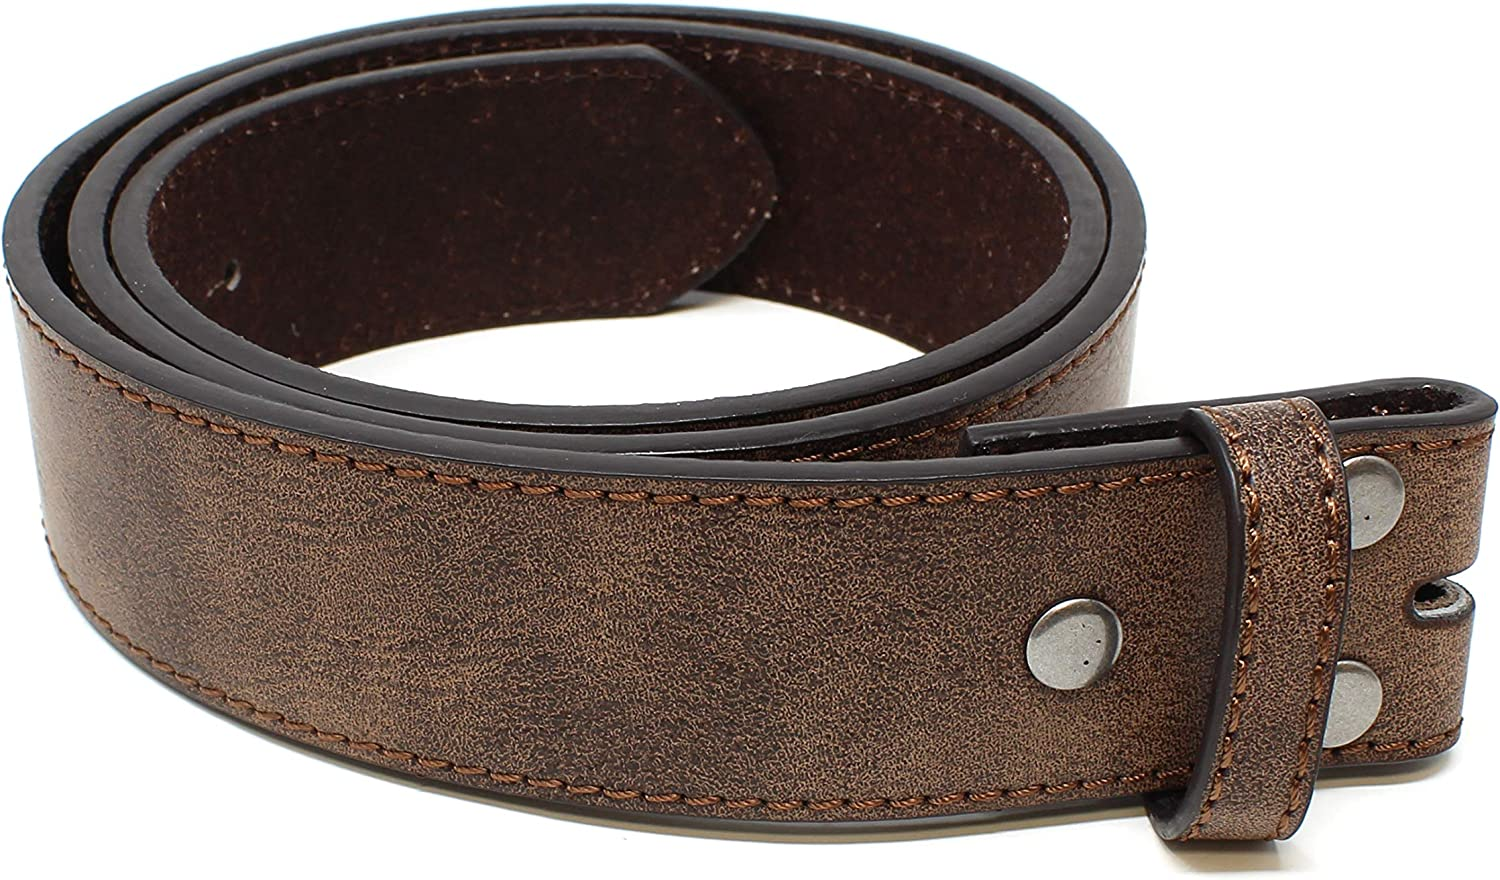 Leather Belt Strap with Vintage Distressed Texture 1.5